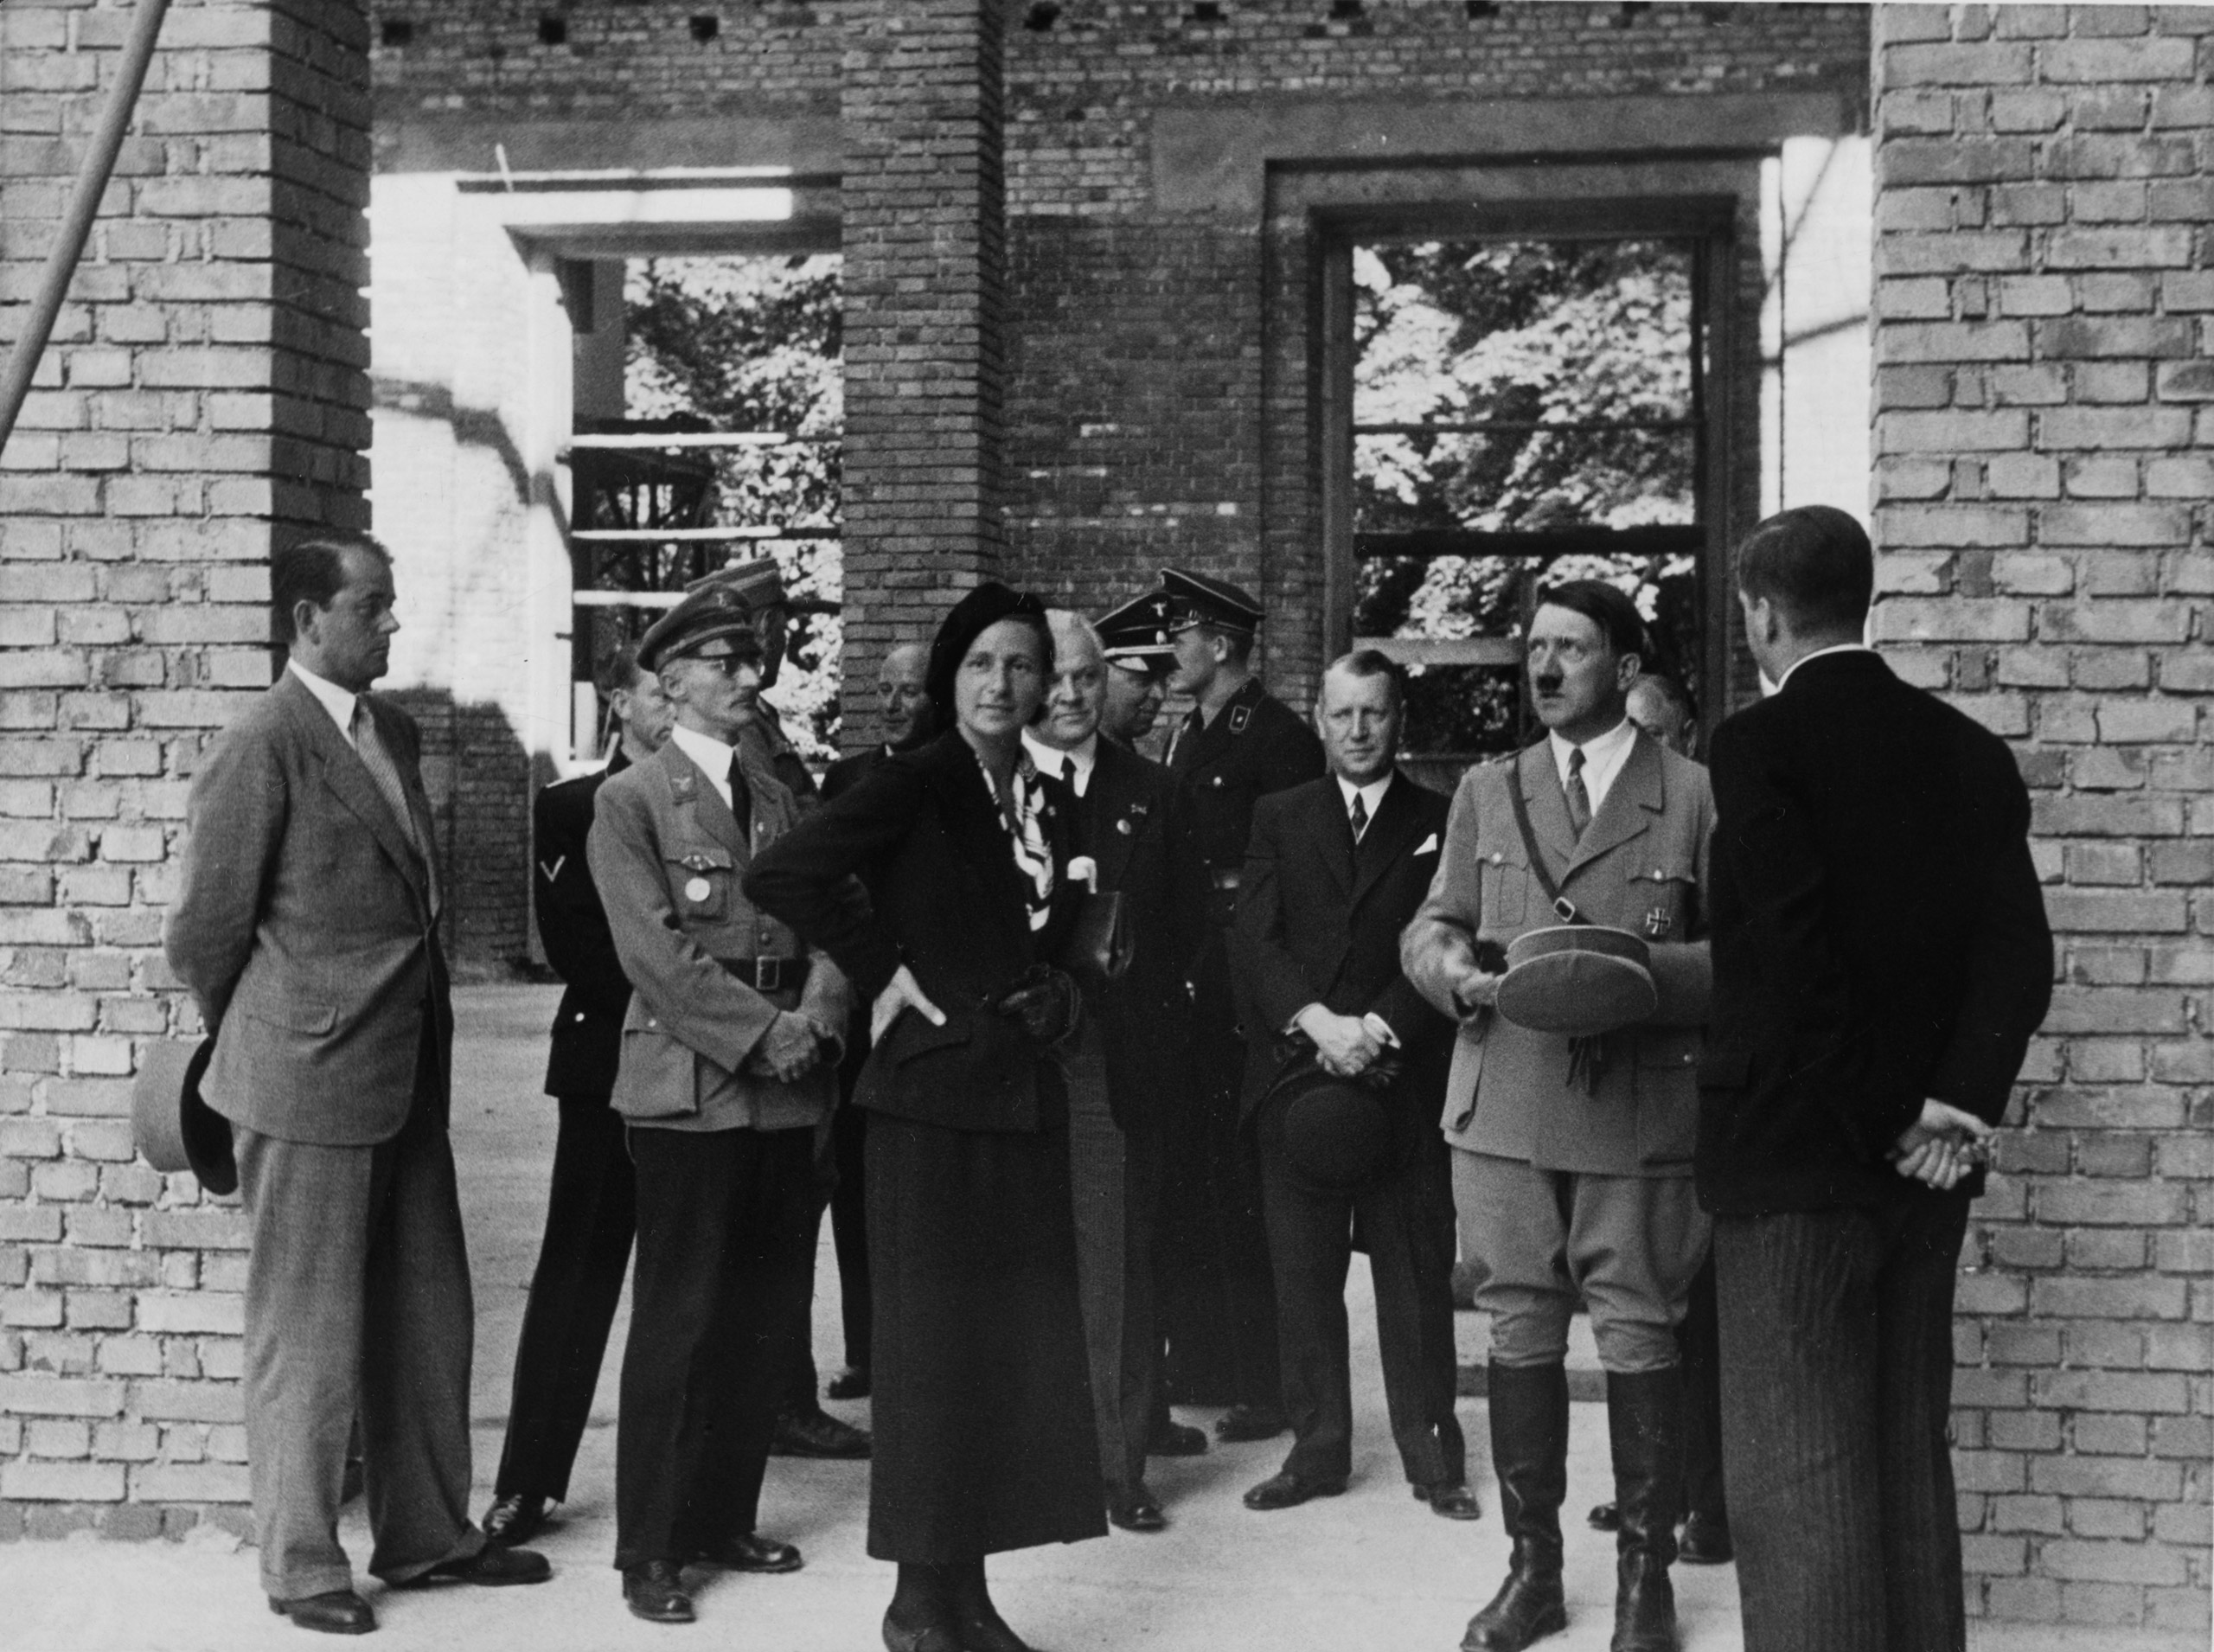 Heinrich Hoffmann photograph of architect Albert  Speer (far left), interior designer Gerdy Troost, Hitler, and others inspecting the House of German Art construction site in Munich on June 29, 1935, on the occasion of the topping-out ceremony.